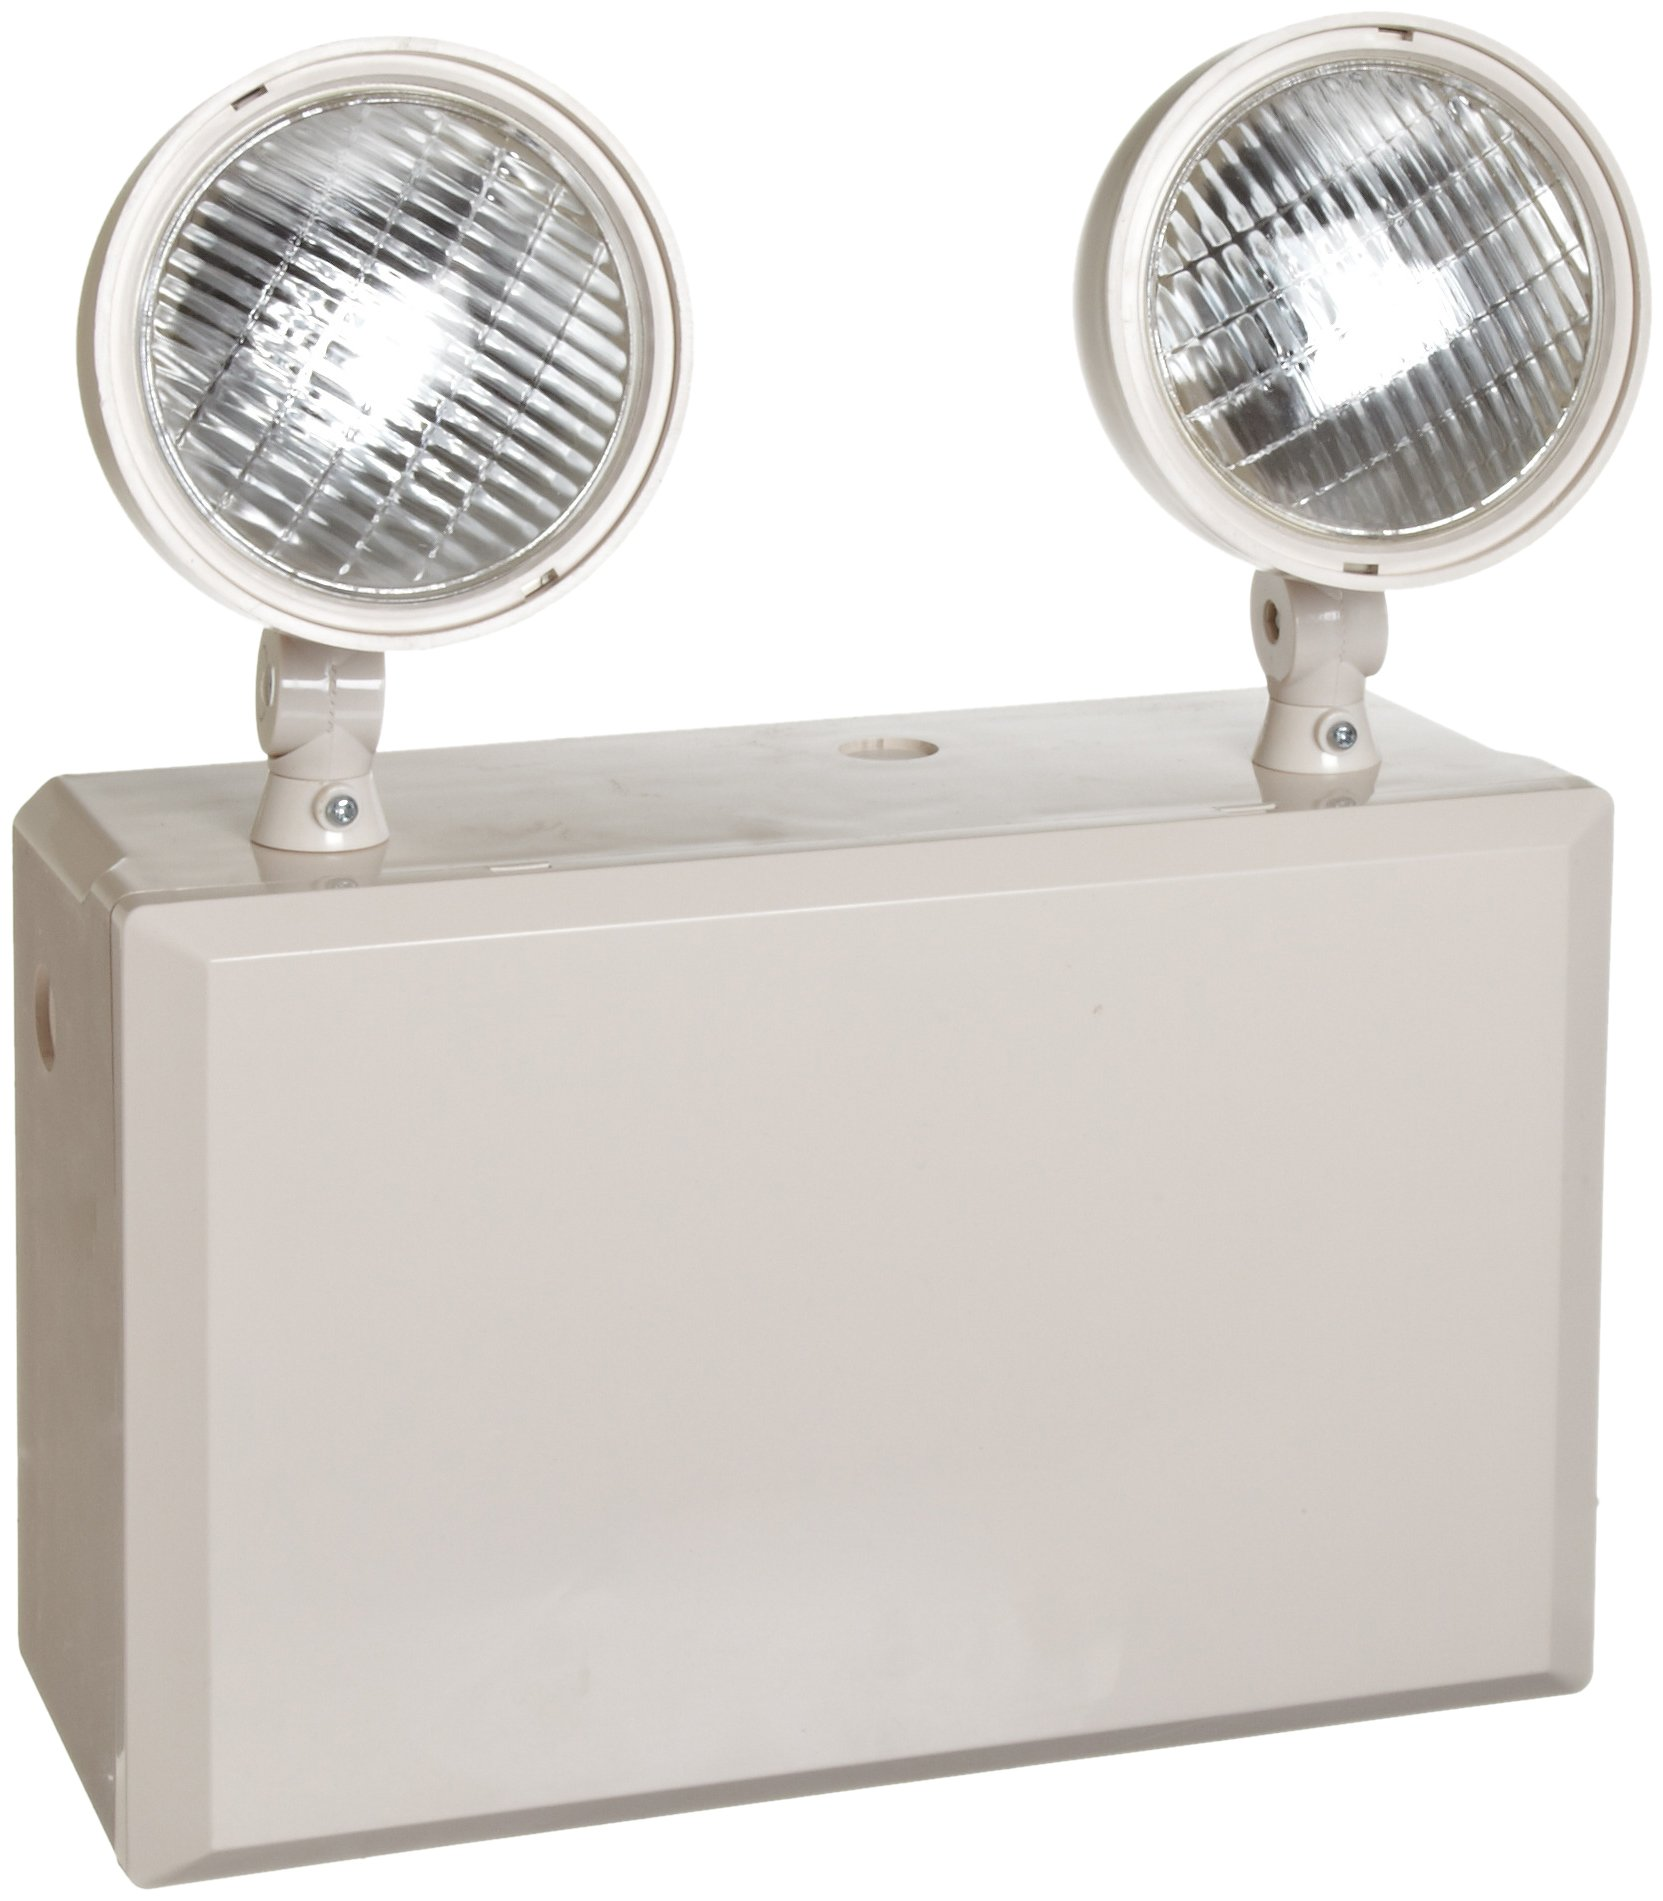 Morris Products 73176 Emergency Lighting Unit with Remote Capacity, 12 Volts, 50W